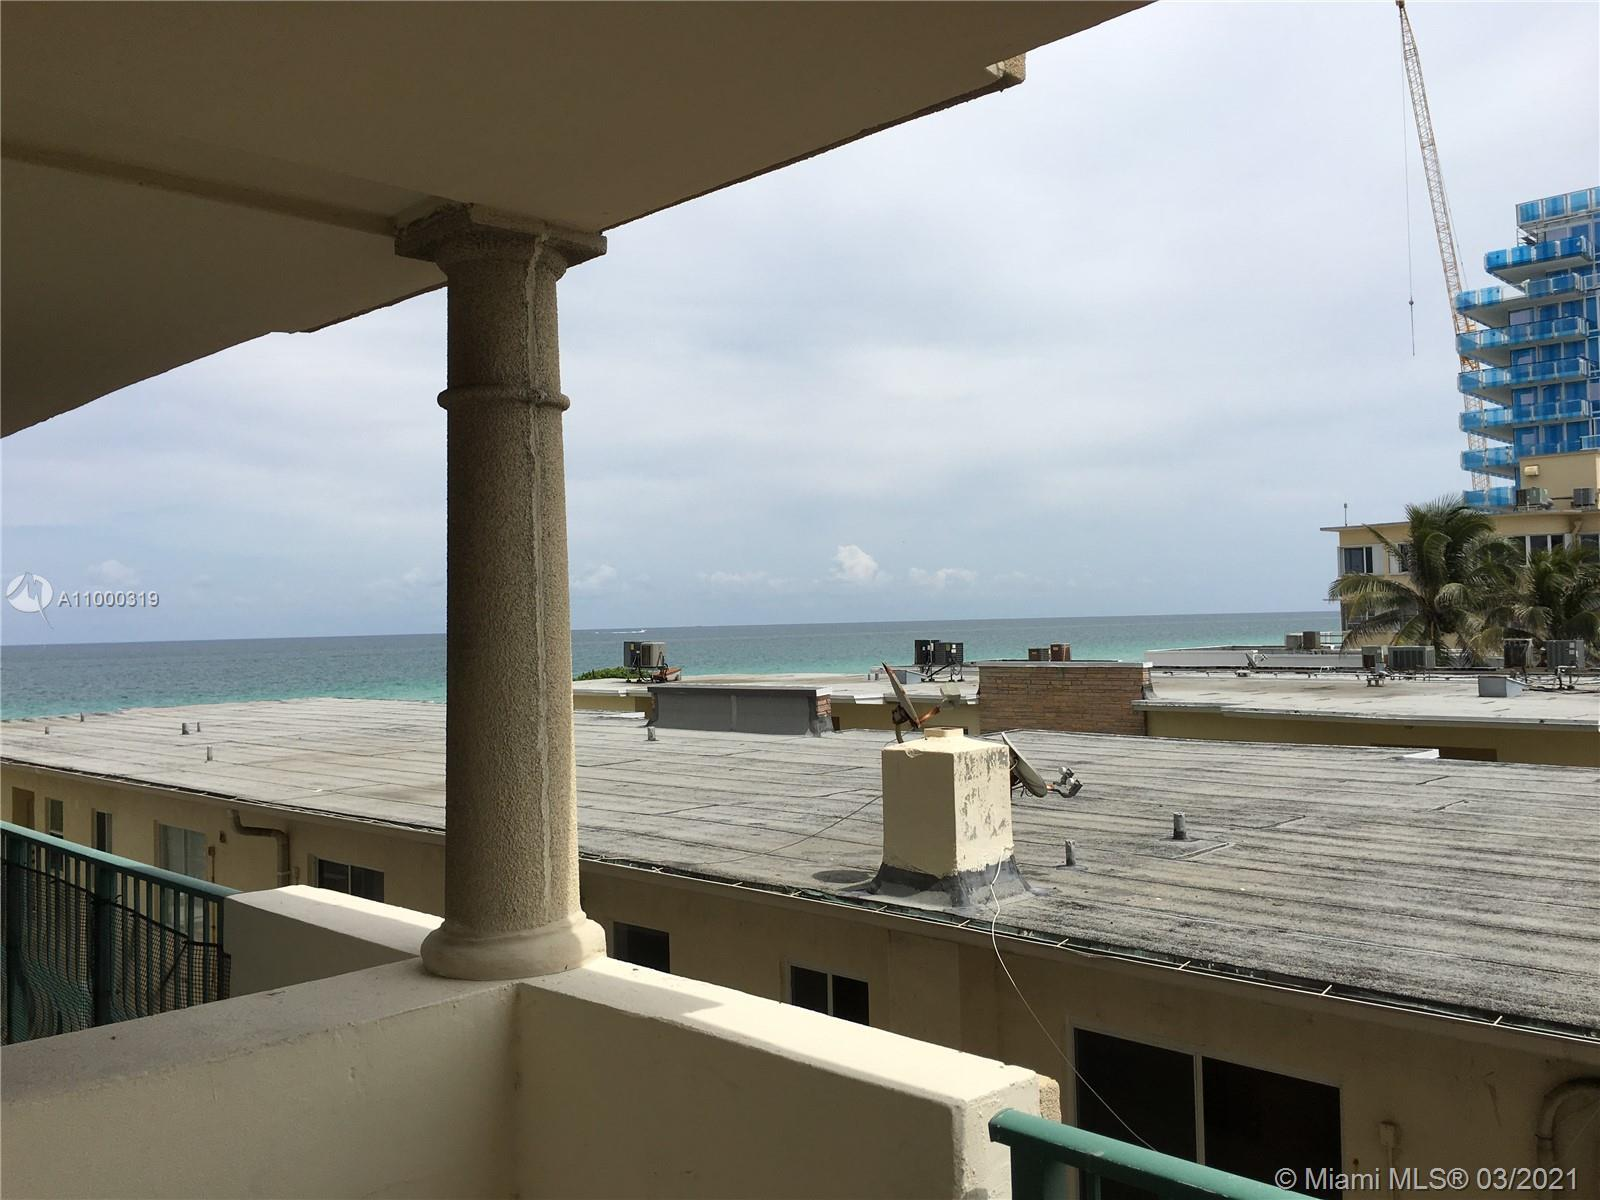 location!!!LOCATION!!!  Live on the beach!! investors welcome short term ok!!! marble floors. balcon